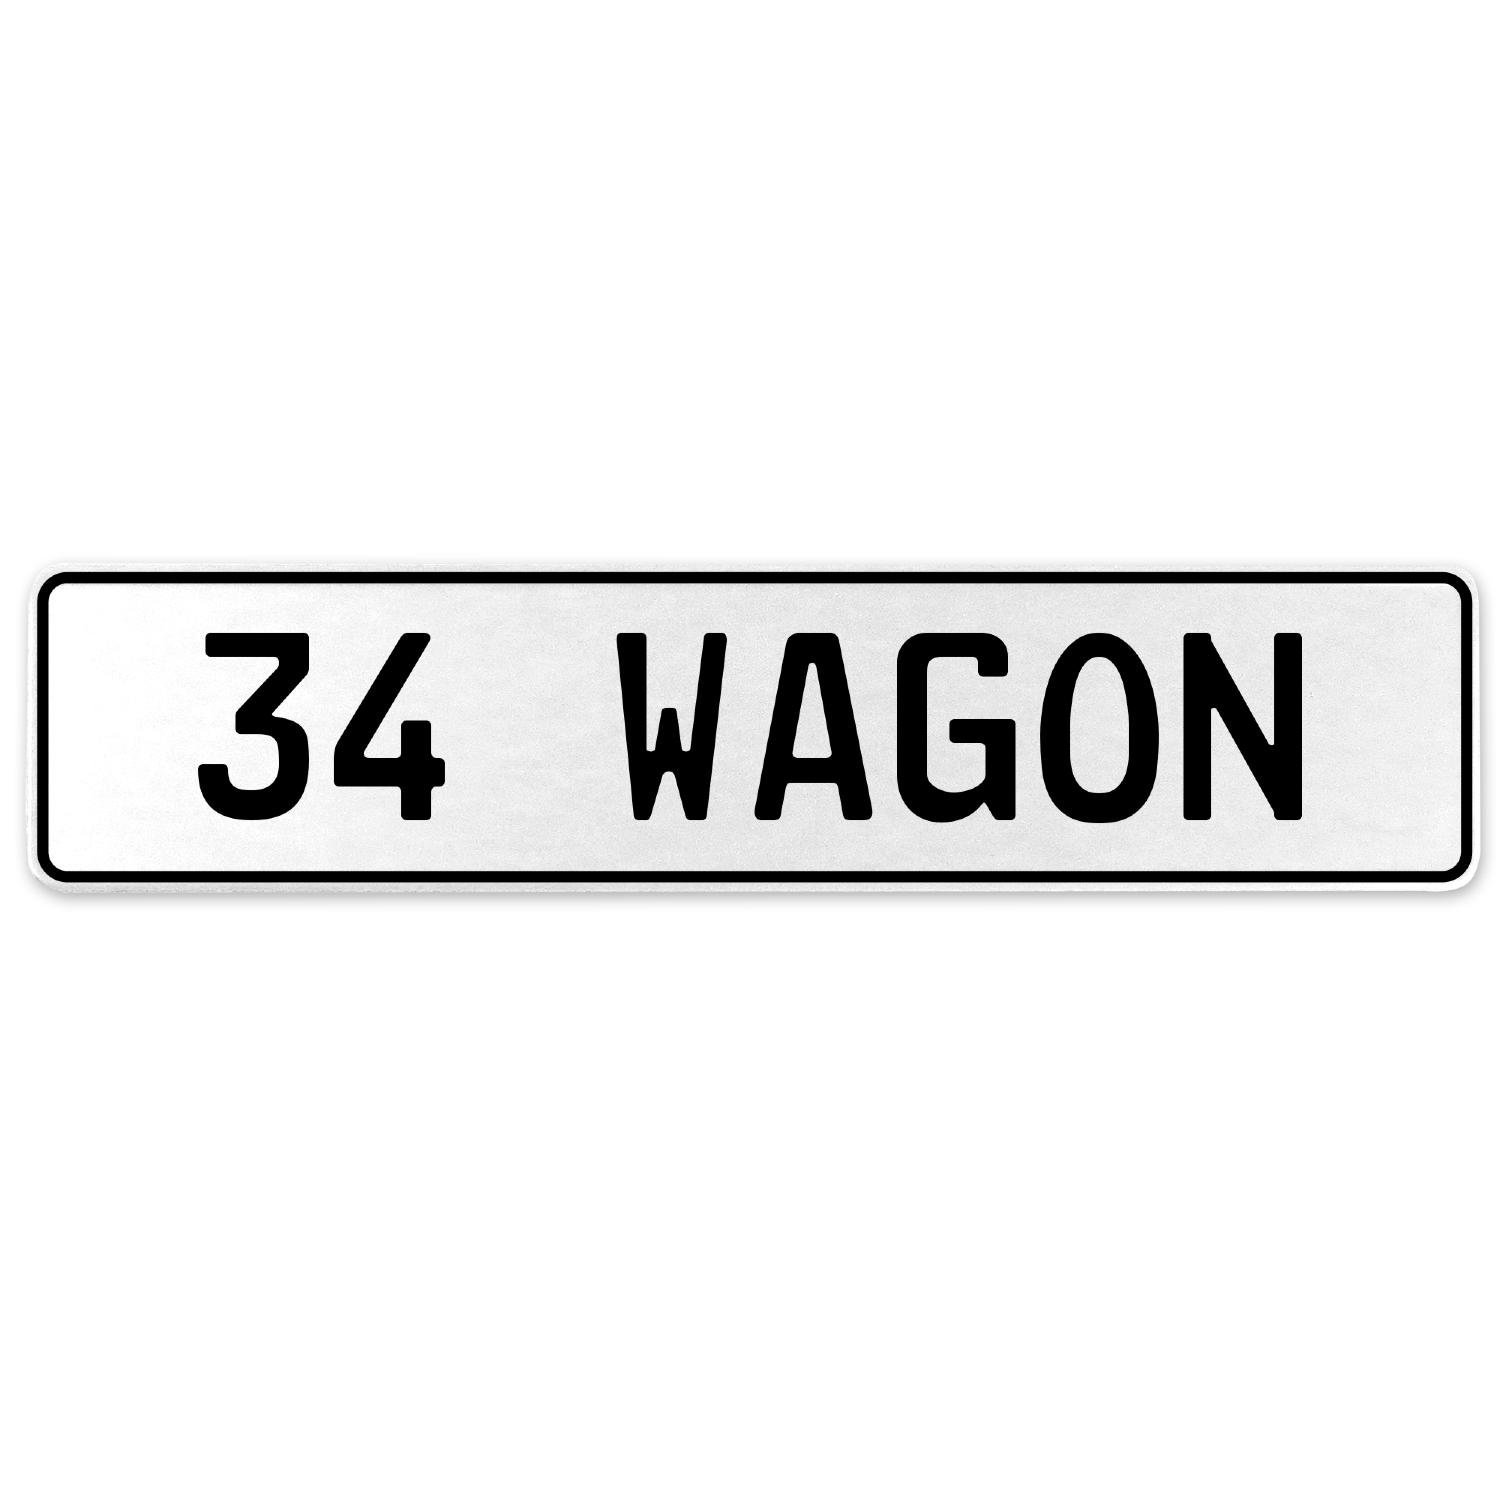 Vintage Parts 558195 34 Wagon White Stamped Aluminum European License Plate